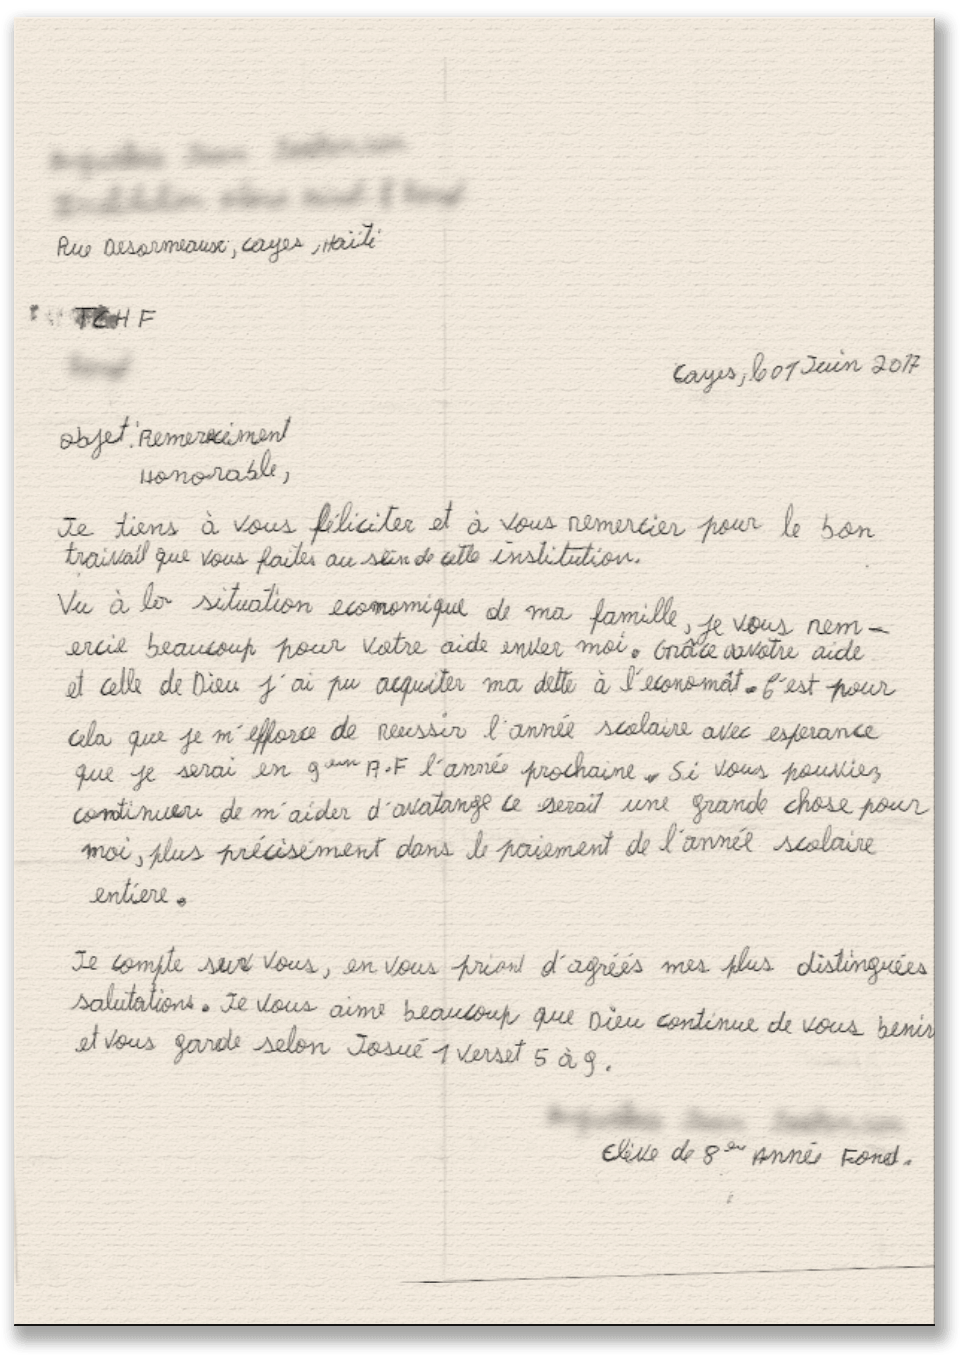 Letters from Students - The Children Heritage Foundation (tCHF)